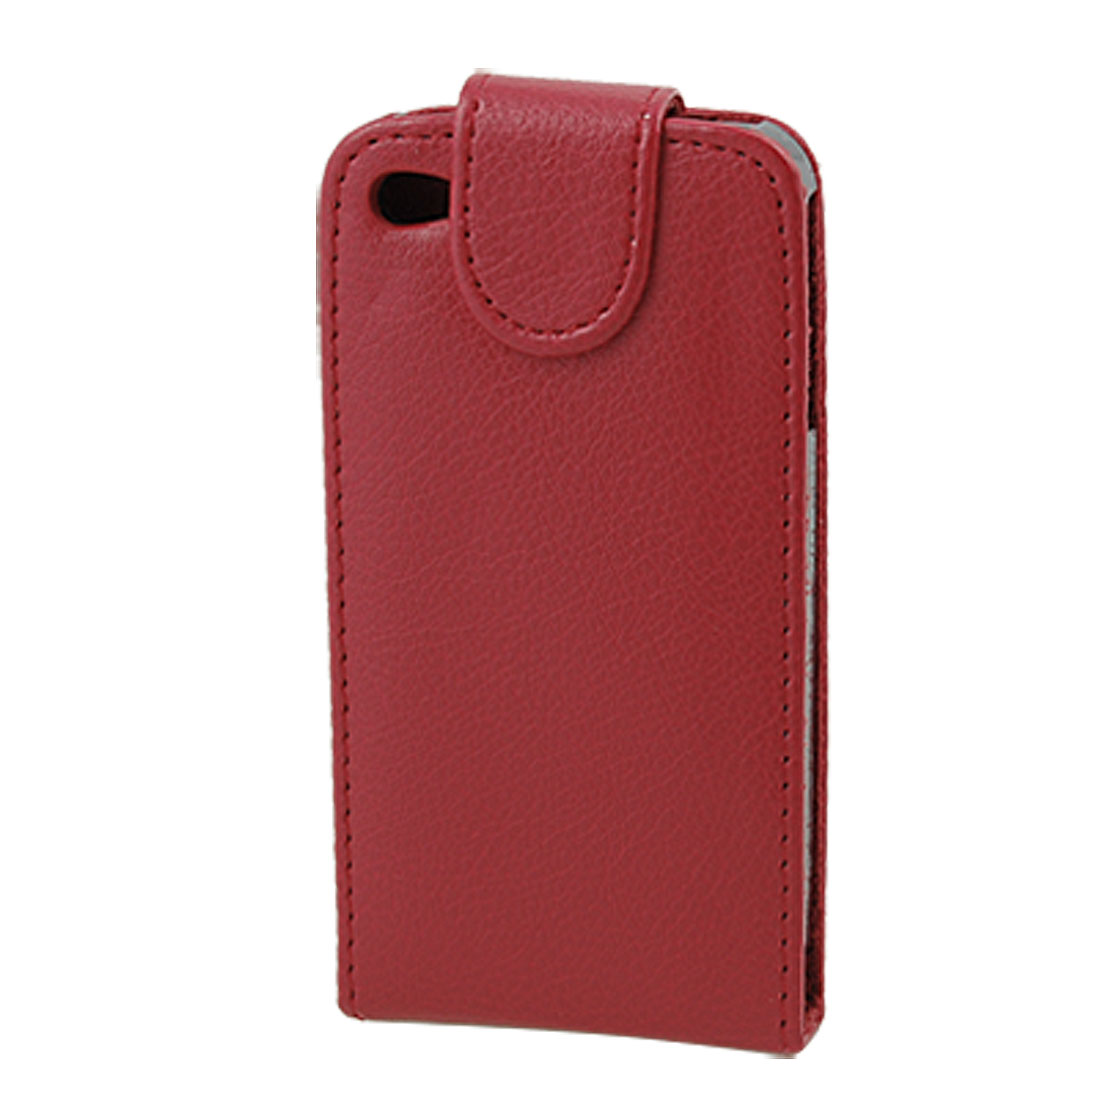 Red Faux Leather Vertical Magnetic Flip Flap Pouch Case for iPhone 4 4G